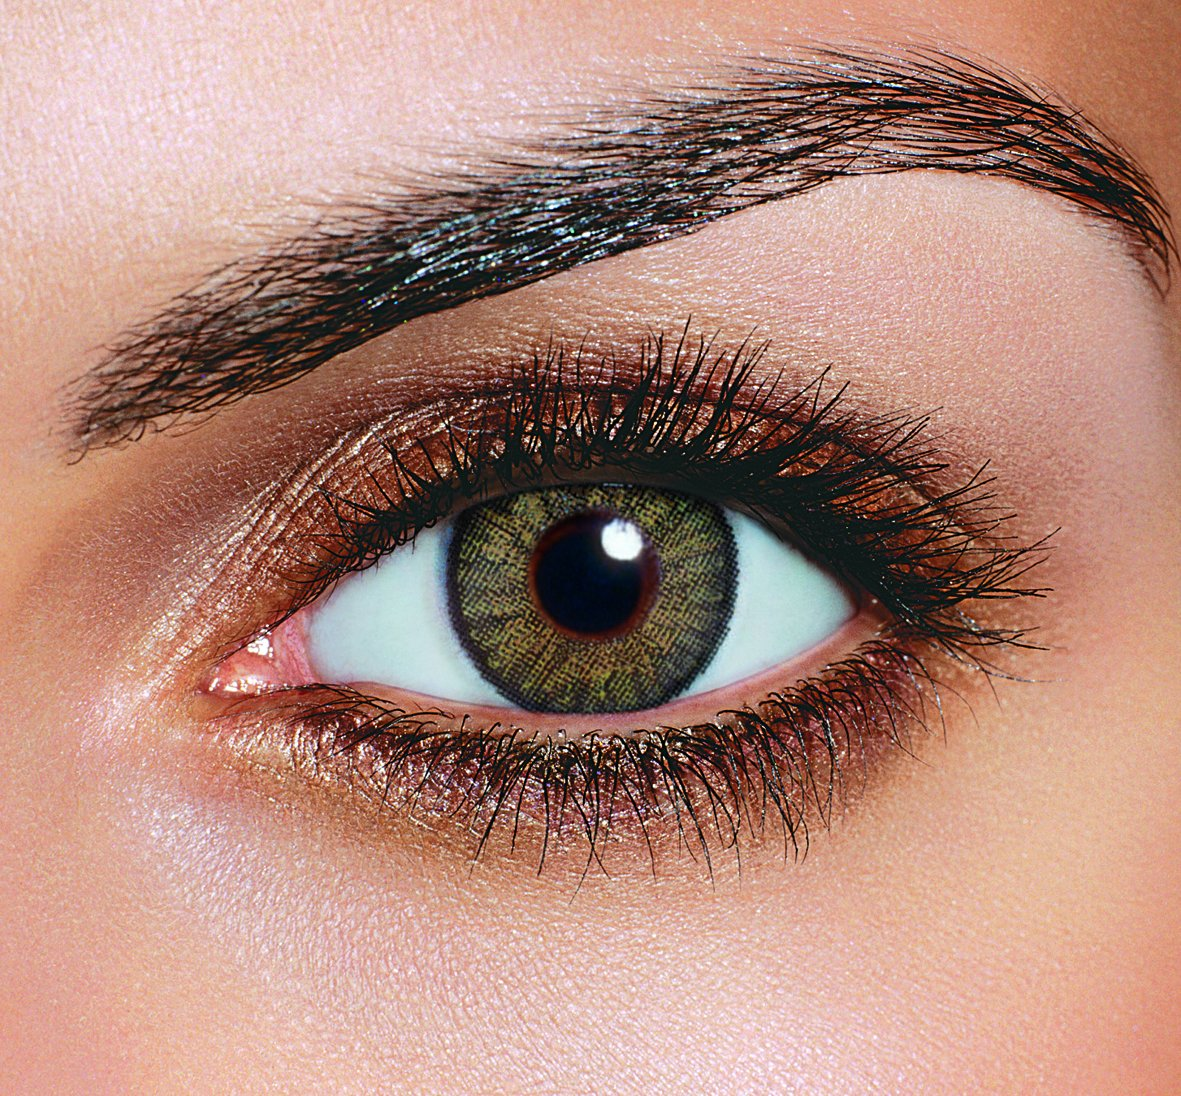 20 Beautiful Makeup For Hazel Eyes Pictures And Ideas On Meta Networks